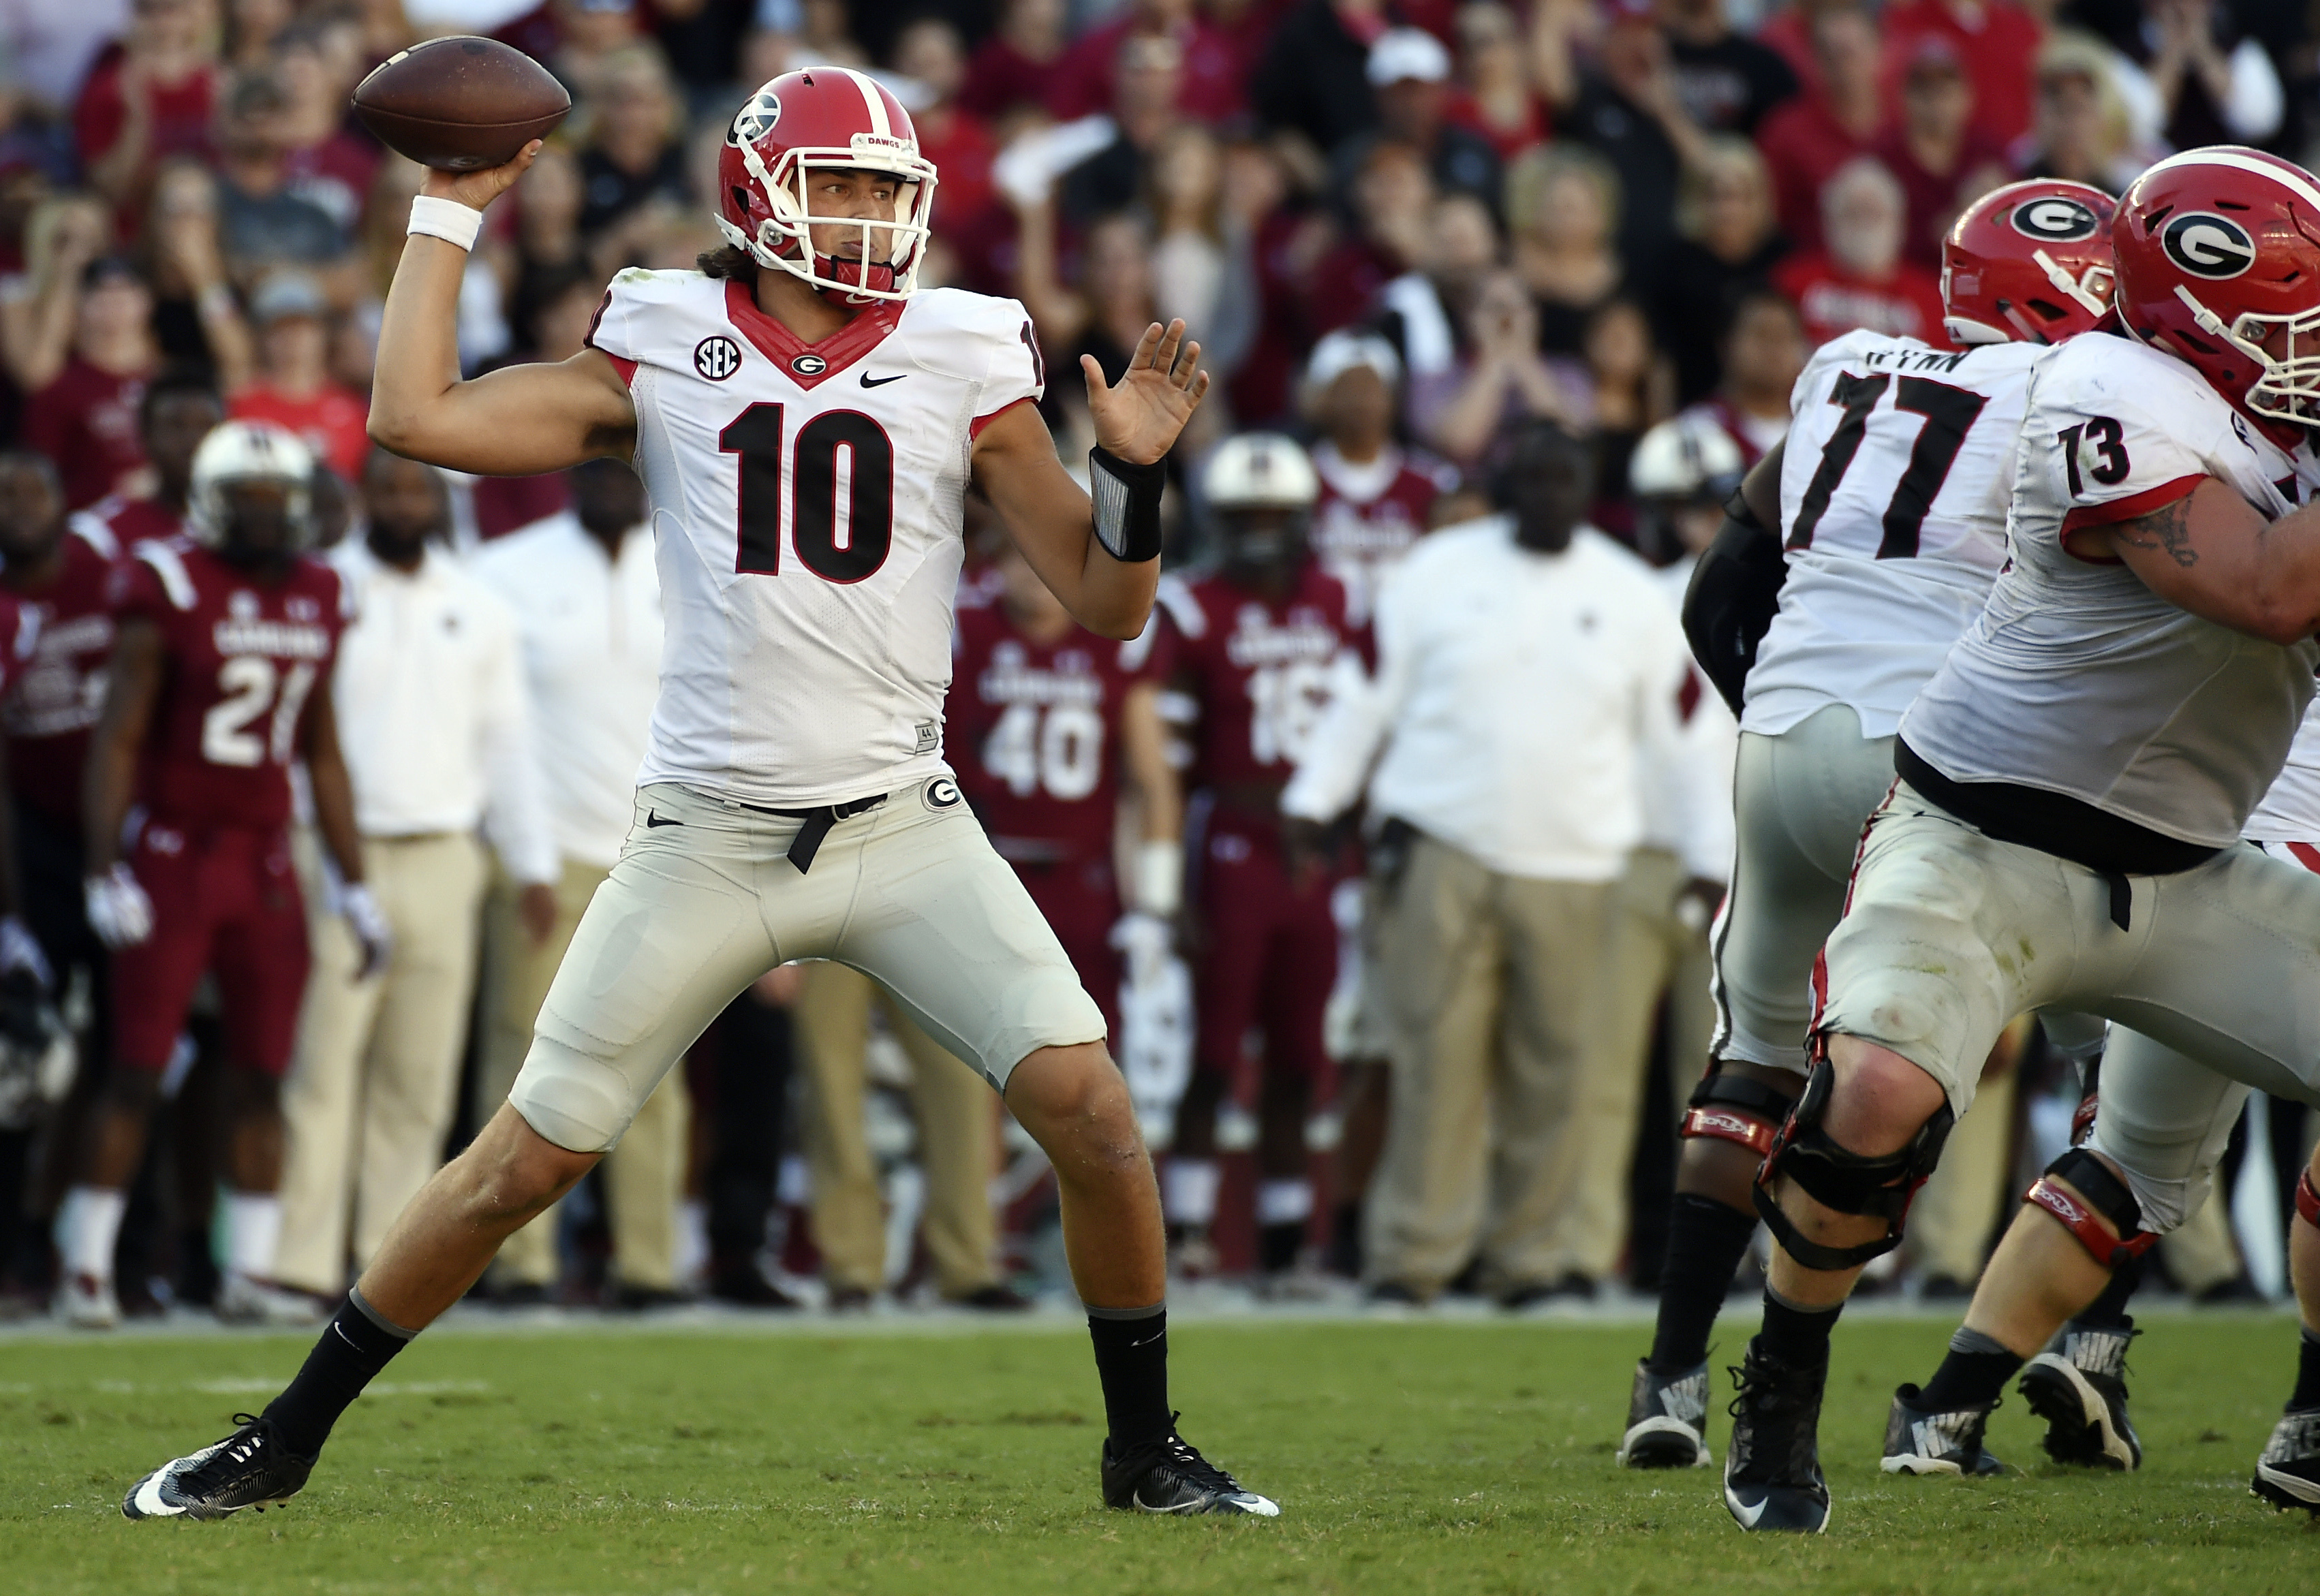 FILE - In this Sunday, Oct. 9, 2016, file photo, Georgia quarterback Jacob Eason (10) throws against South Carolina during the second half of an NCAA college football game in Columbia, S.C. Eason looks very much like a freshman quarterback. He passed for